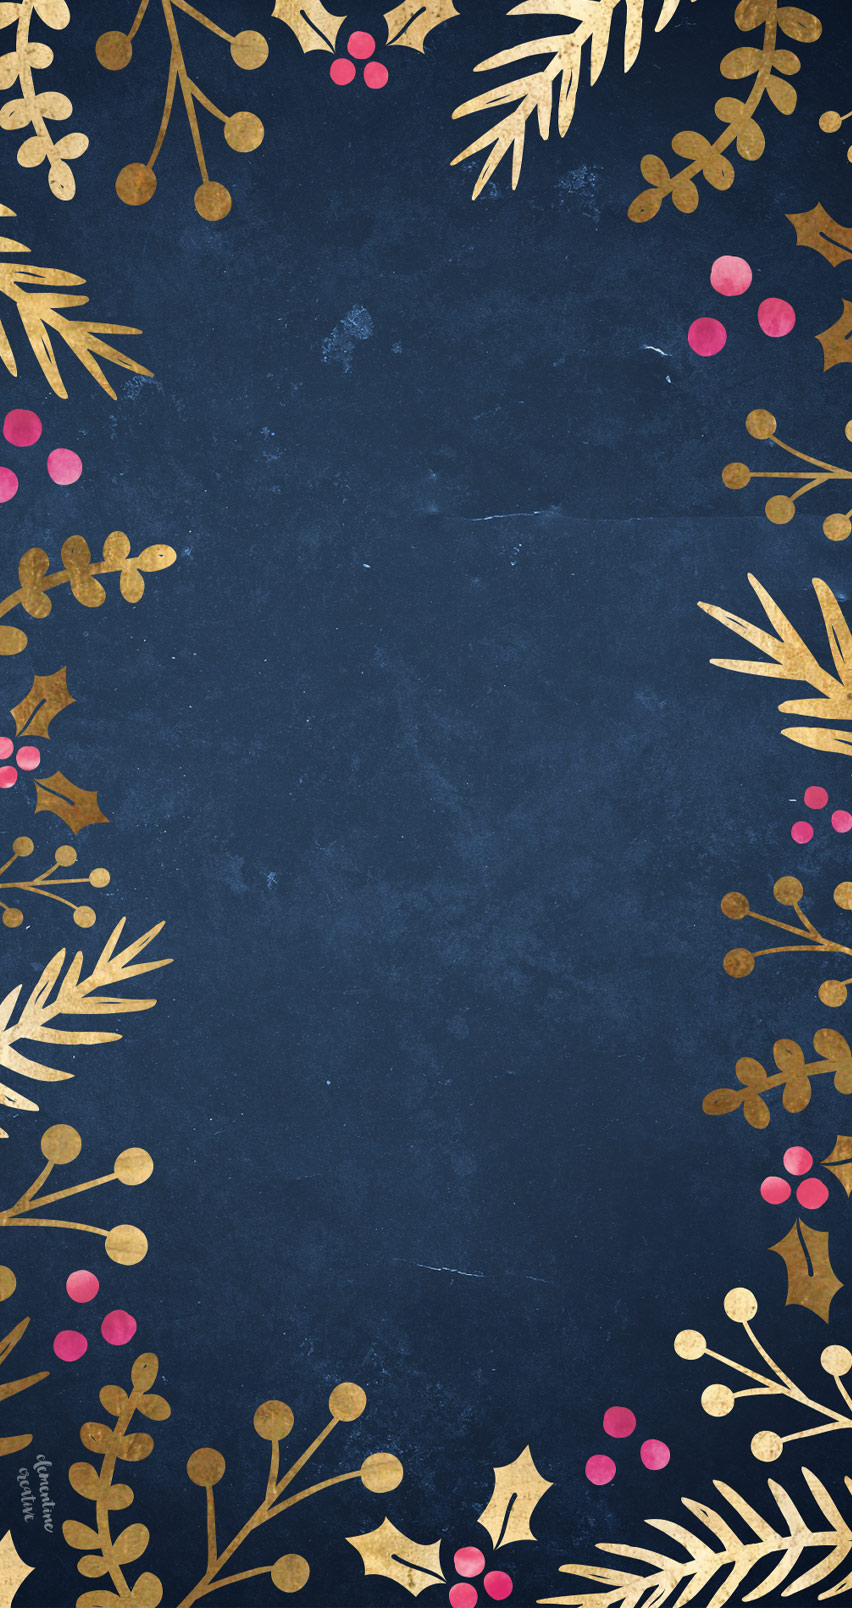 Free festive wallpaper gold foil foliage - Christmas iphone backgrounds tumblr ...